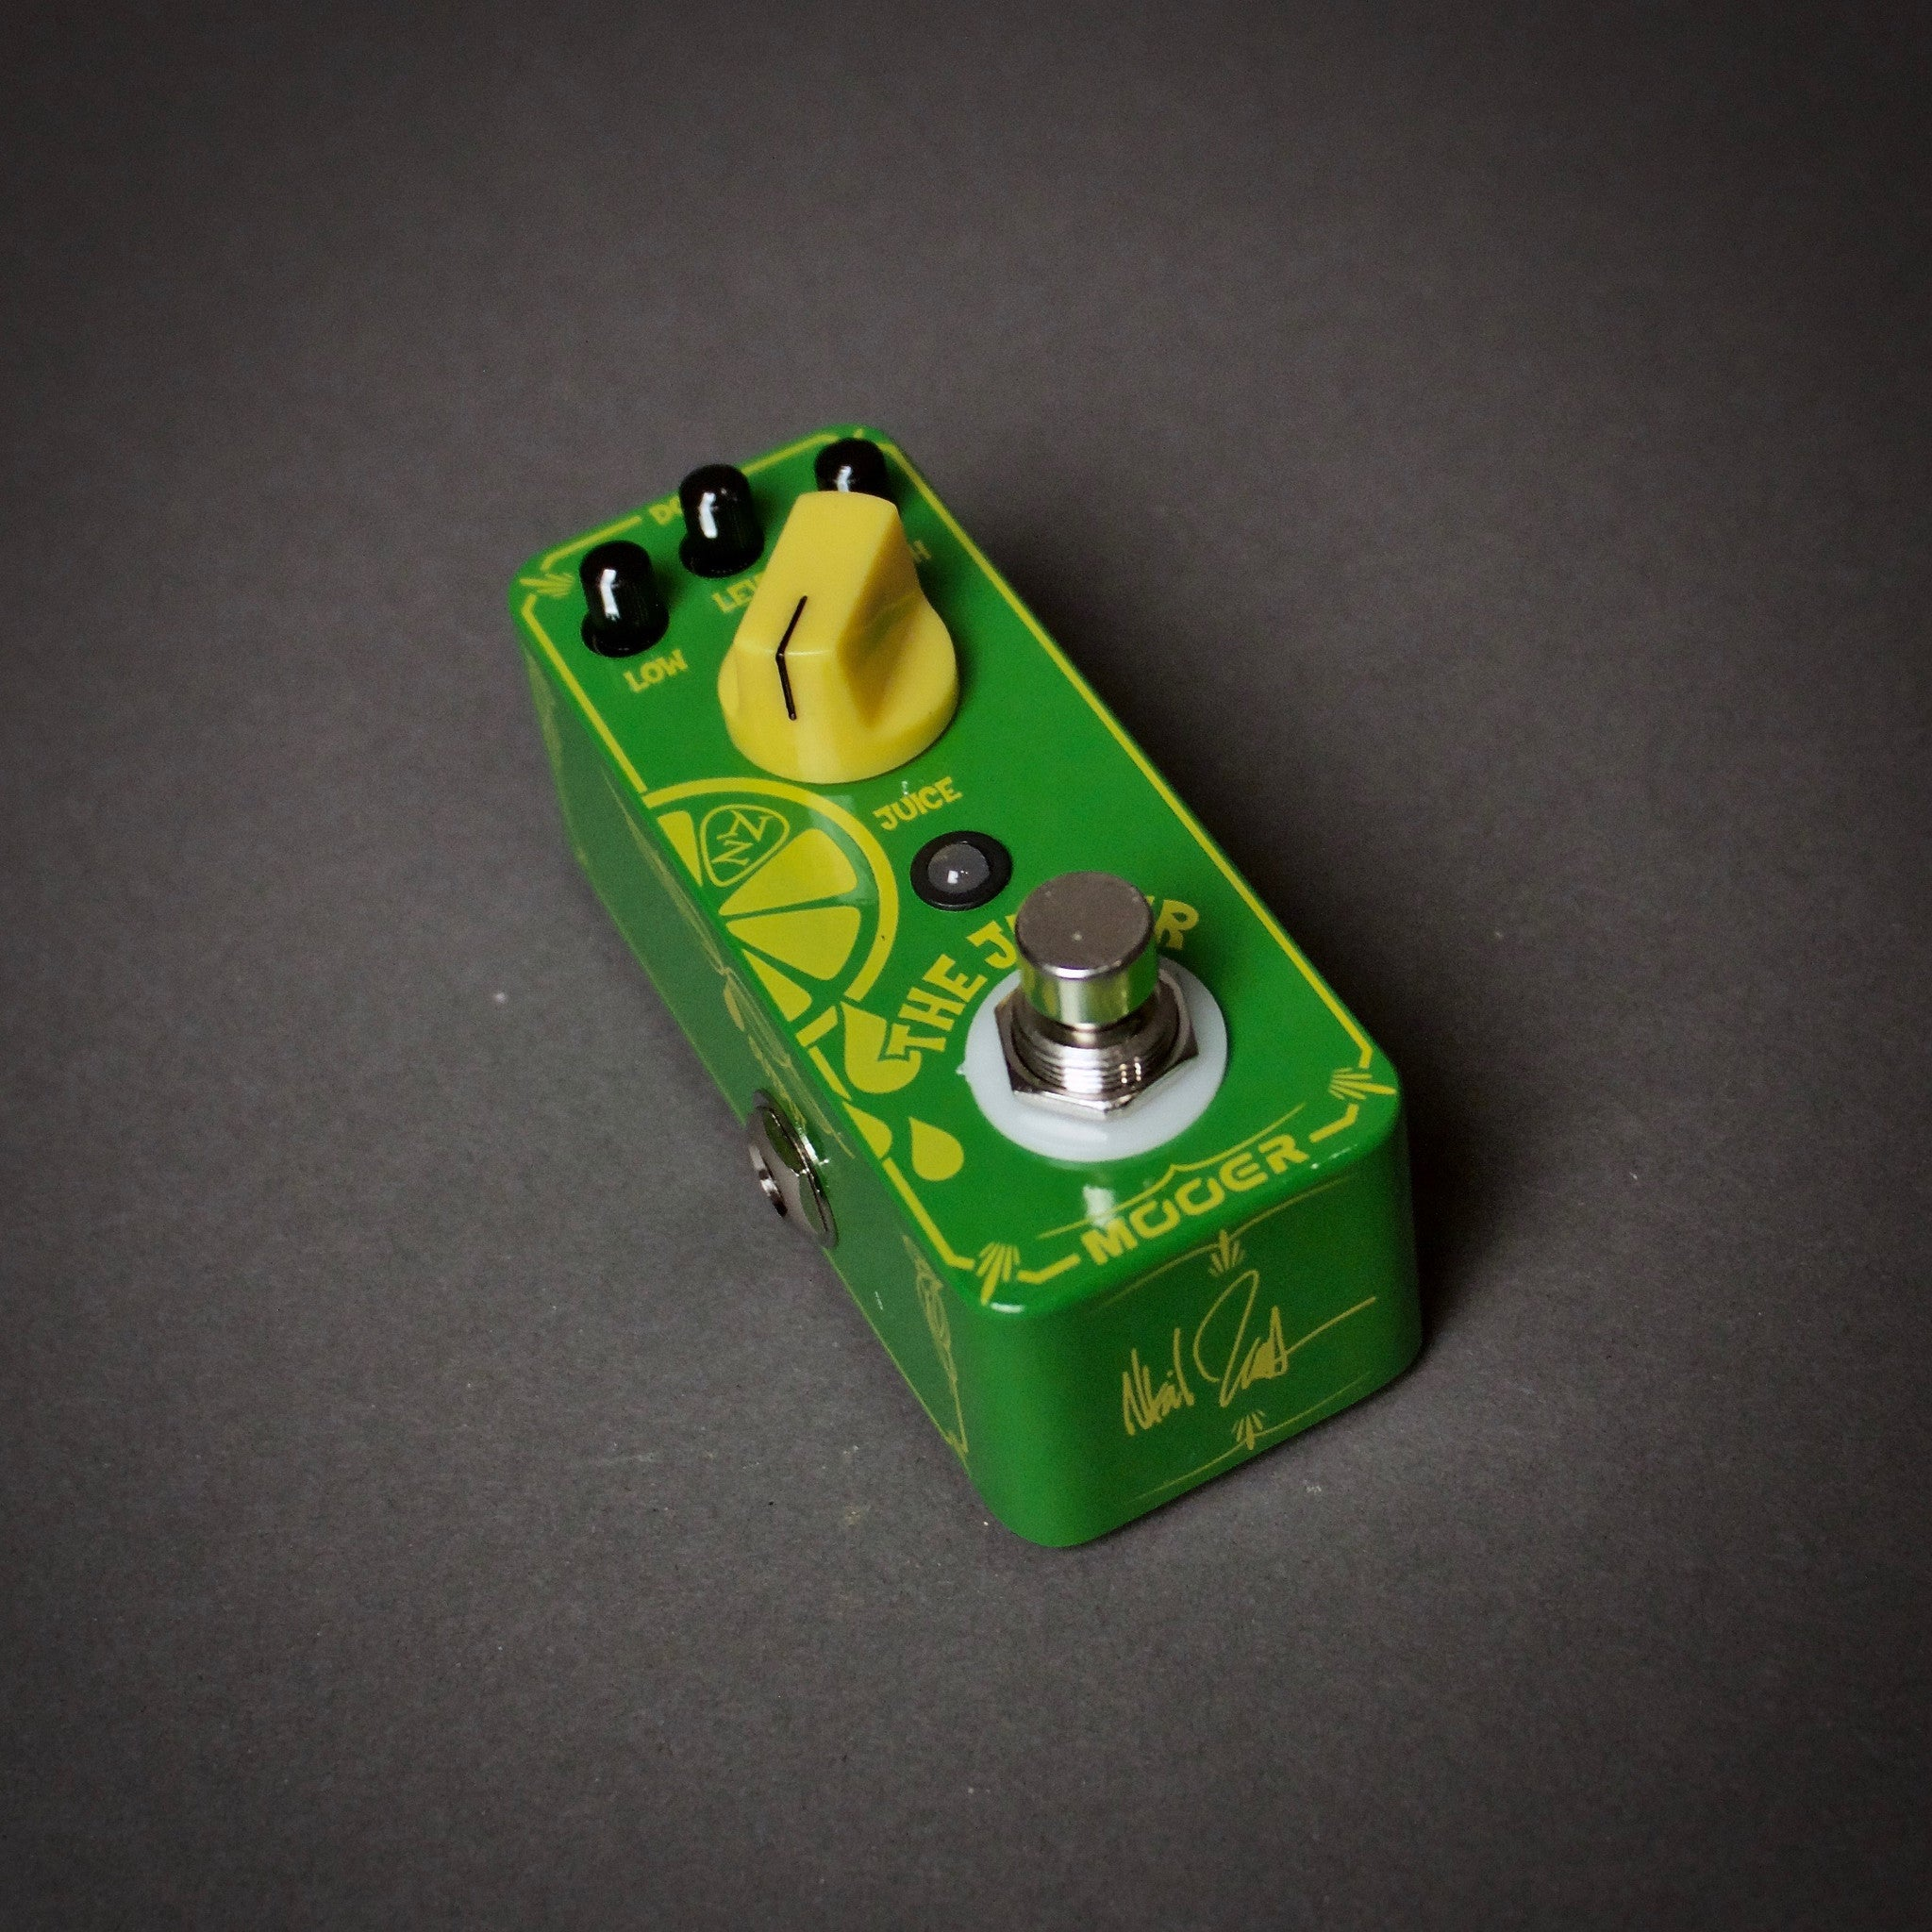 Mooer The Juicer Overdrive Guitar Pedal